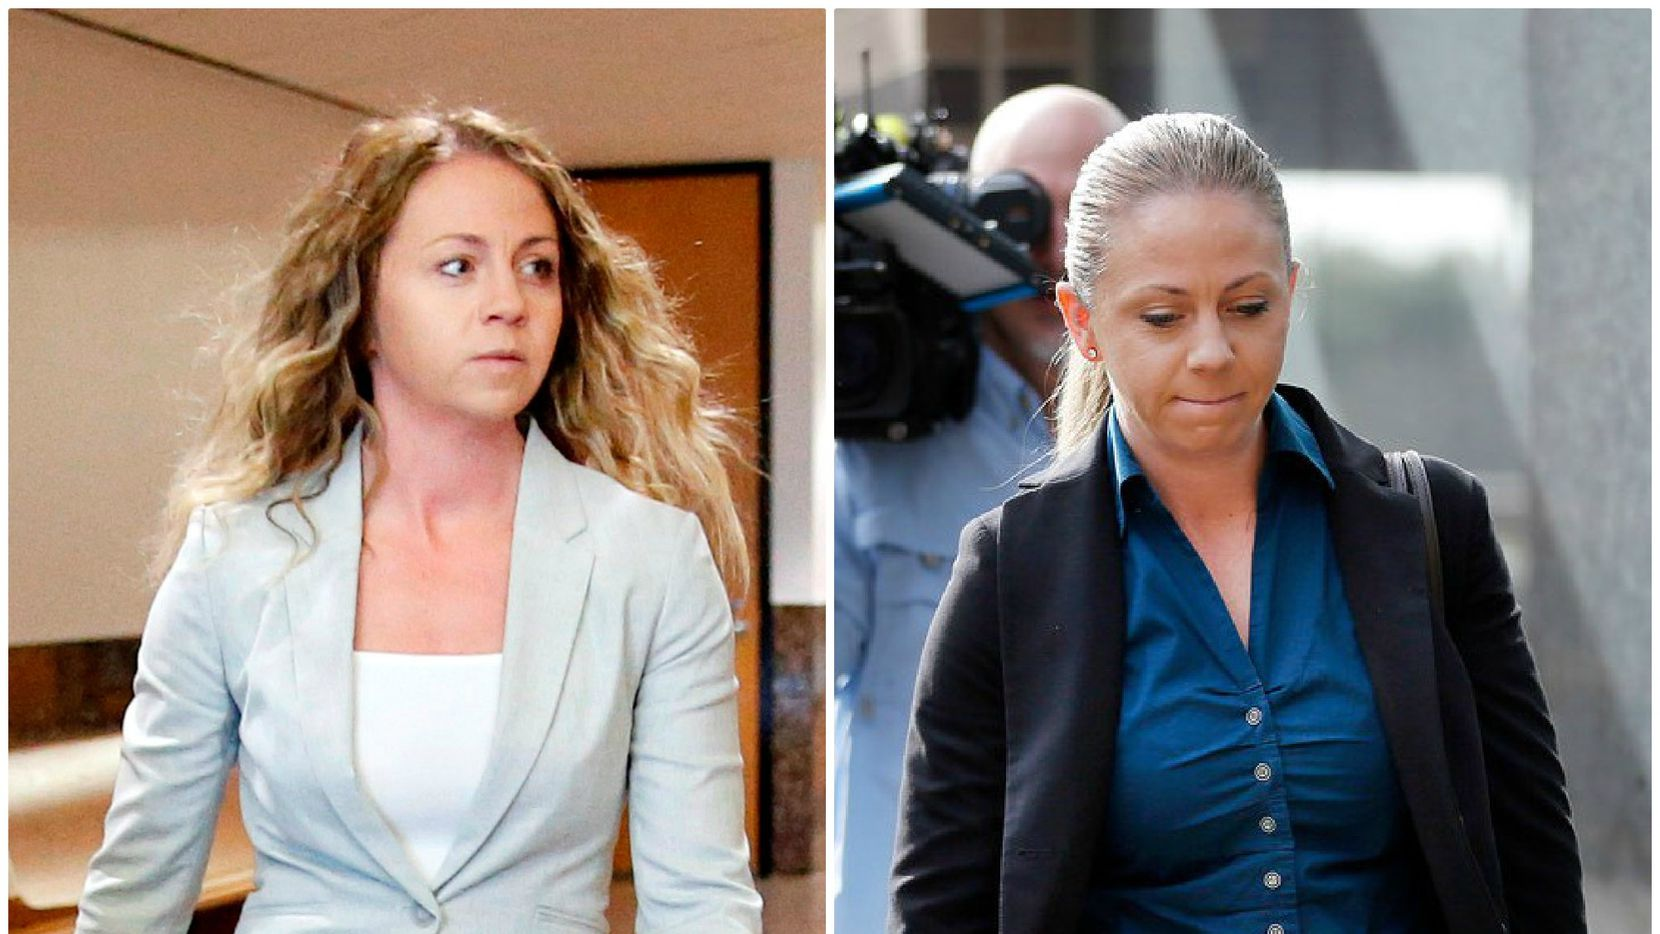 Amber Guyger sported divergent looks on Tuesday (left) and on Jan. 8 at the Frank Crowley Courts Building. Attorneys unaffiliated with the case say the lighter clothes, looser hair and more confident body language are intended to send a message.